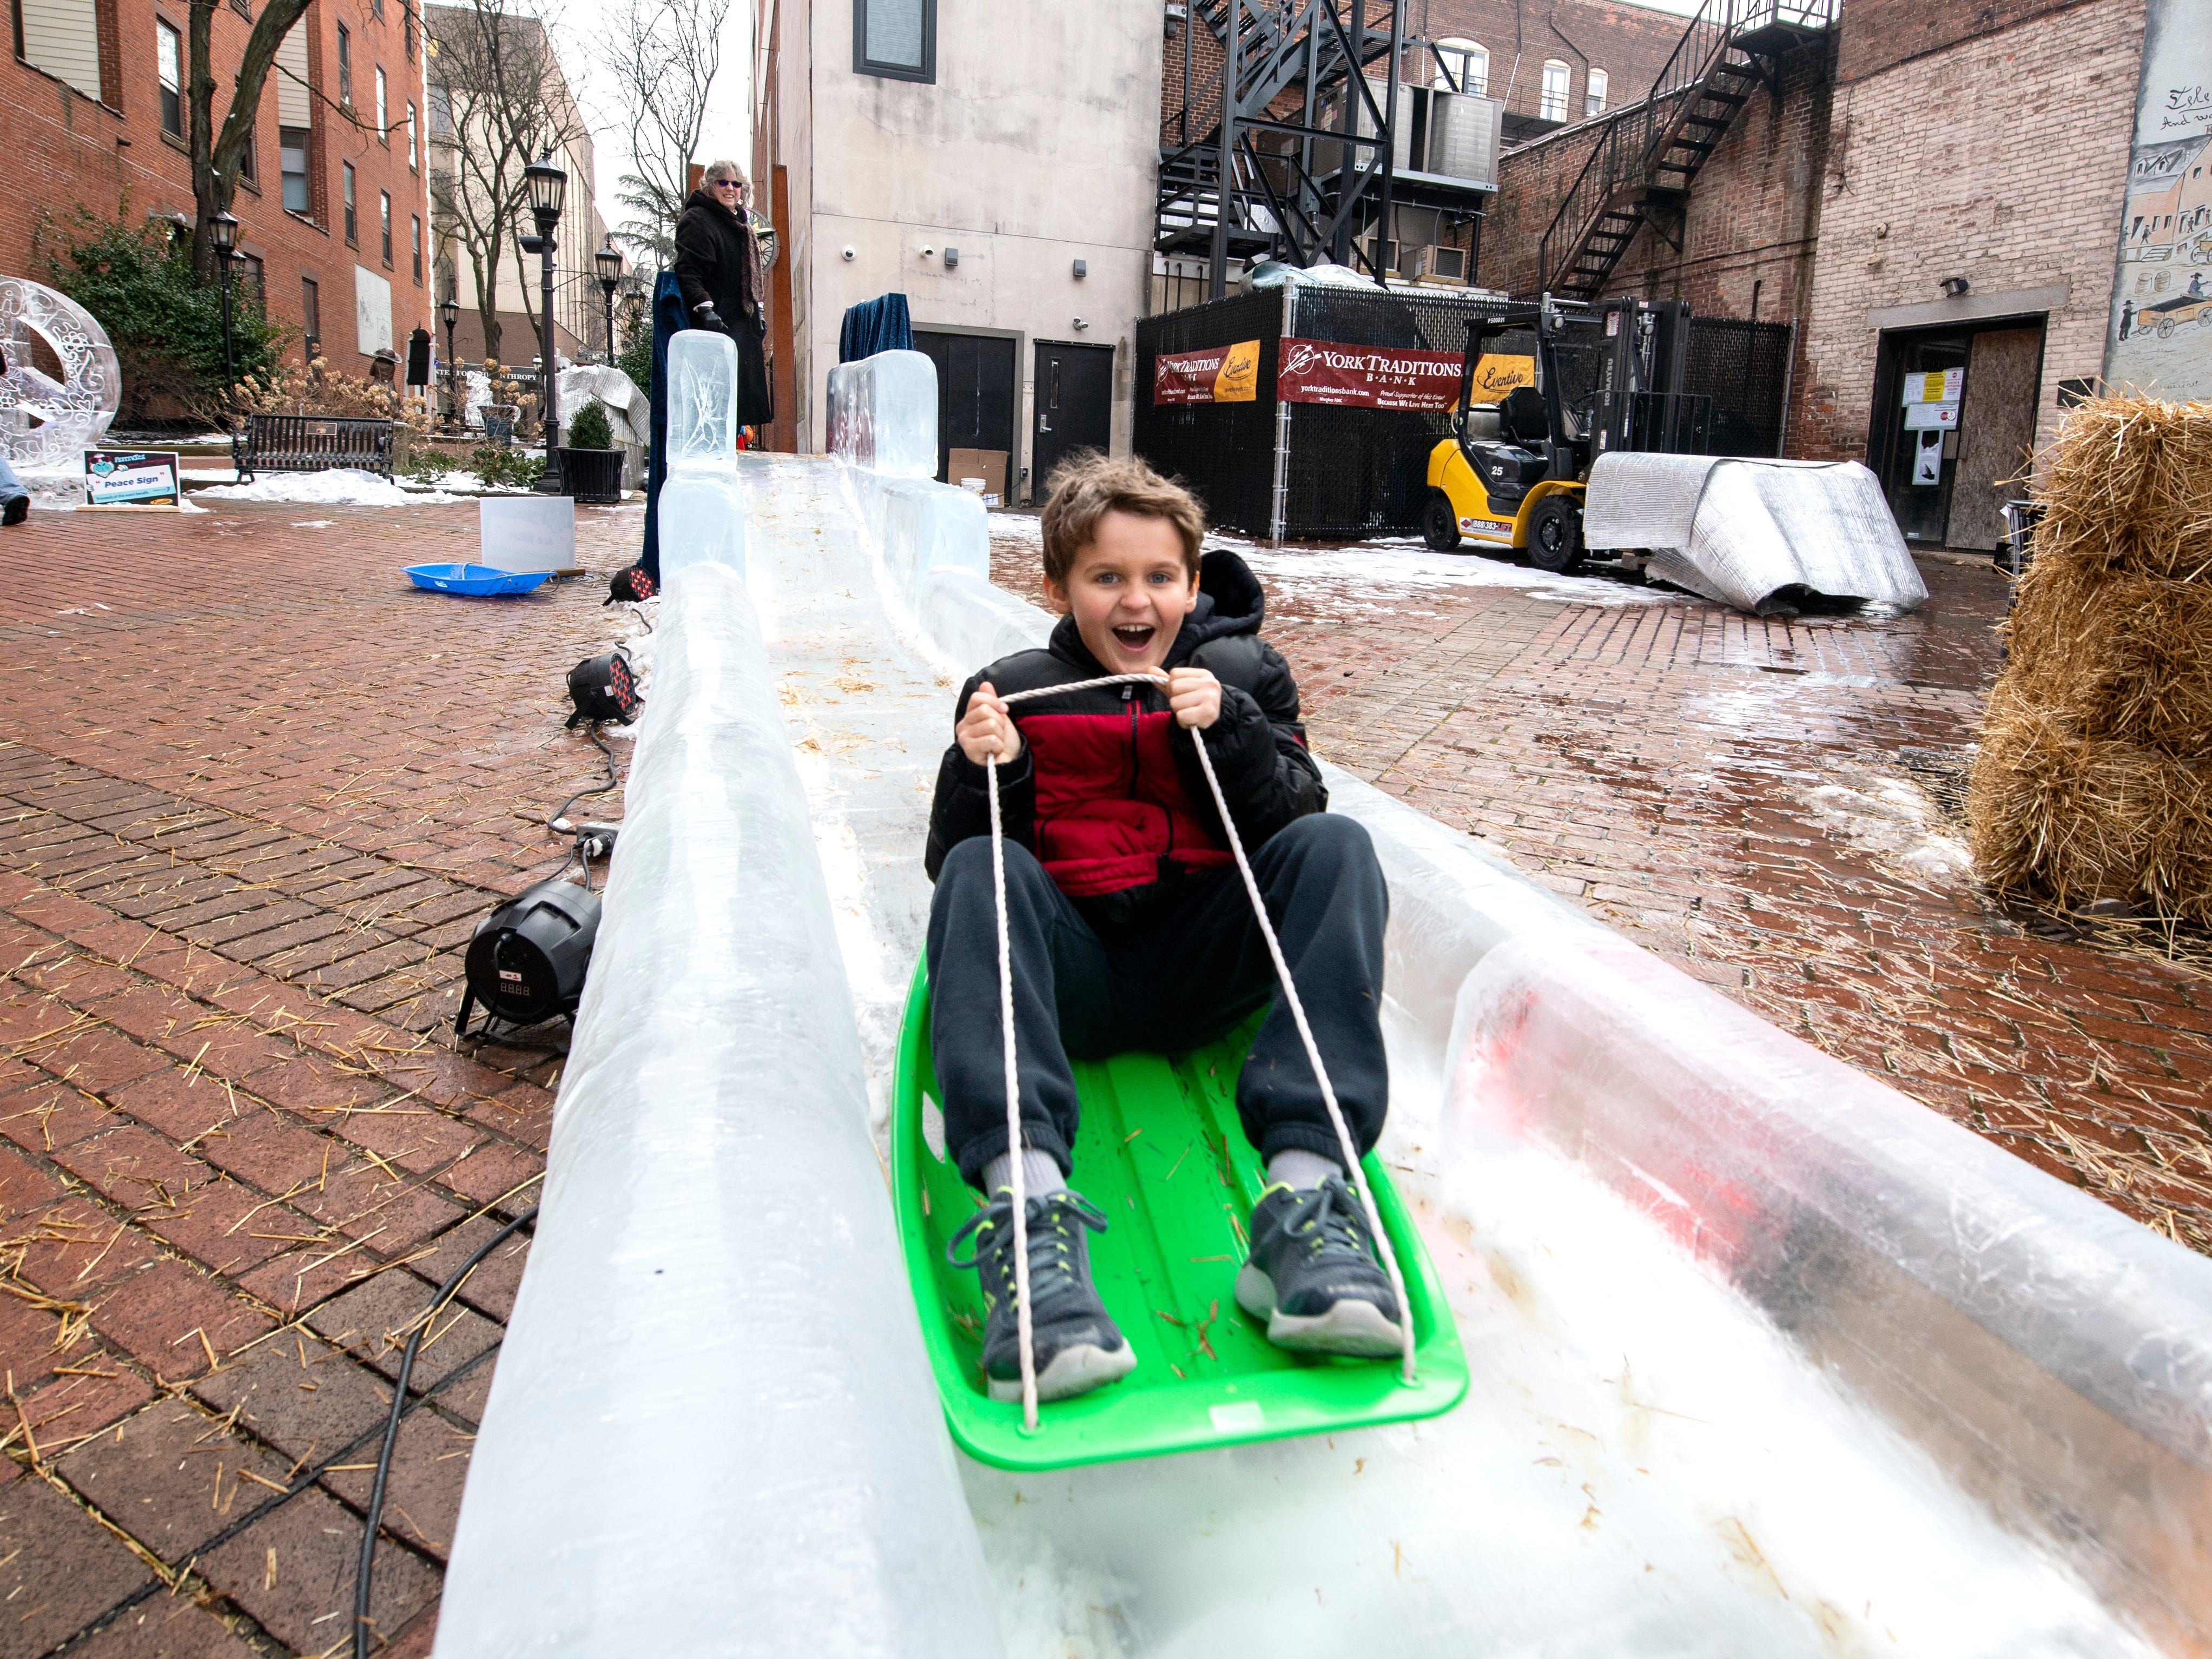 Ozzie Davidson, 7, of Hellam Township, rides down the ice slide in Cherry Lane, downtown, Friday. The FestivICE festival has interactive ice sculptures, a slide and more. The three-day event ends Saturday.